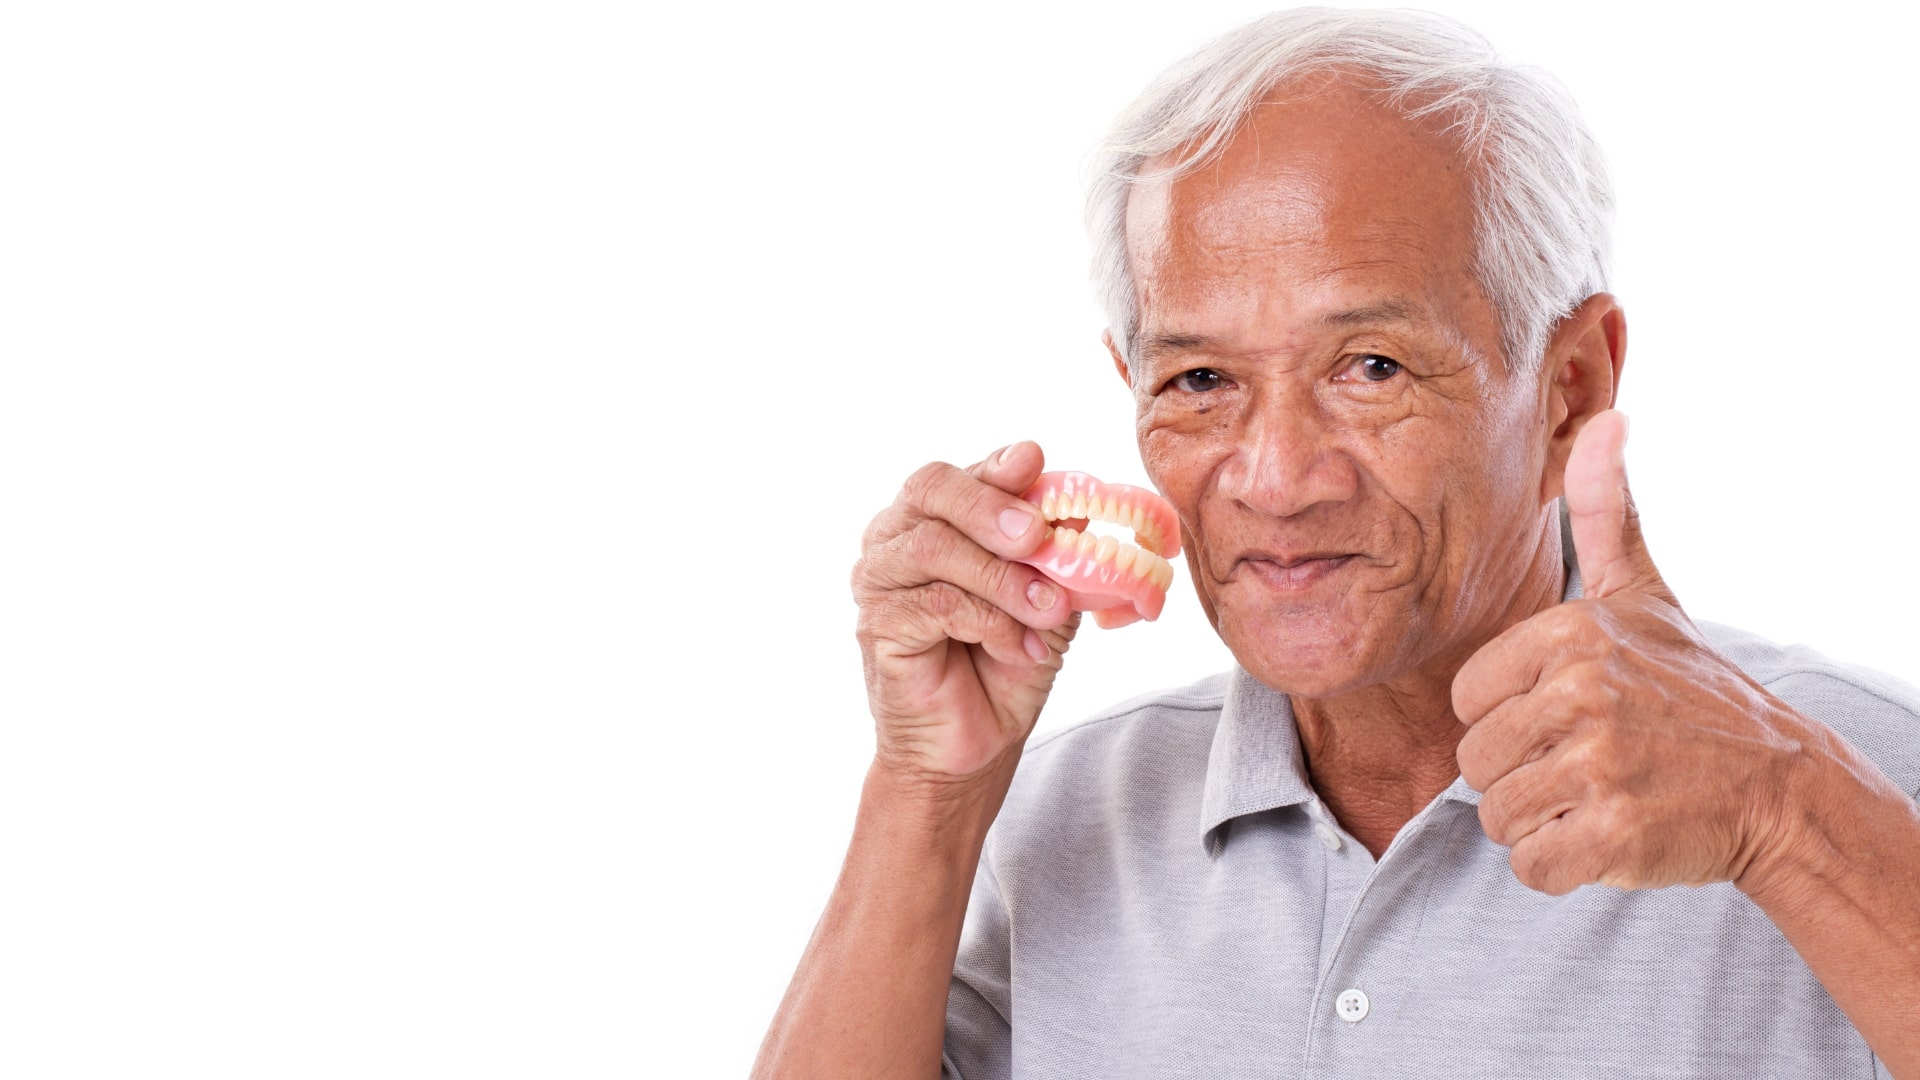 When Should You Be Getting Dentures?